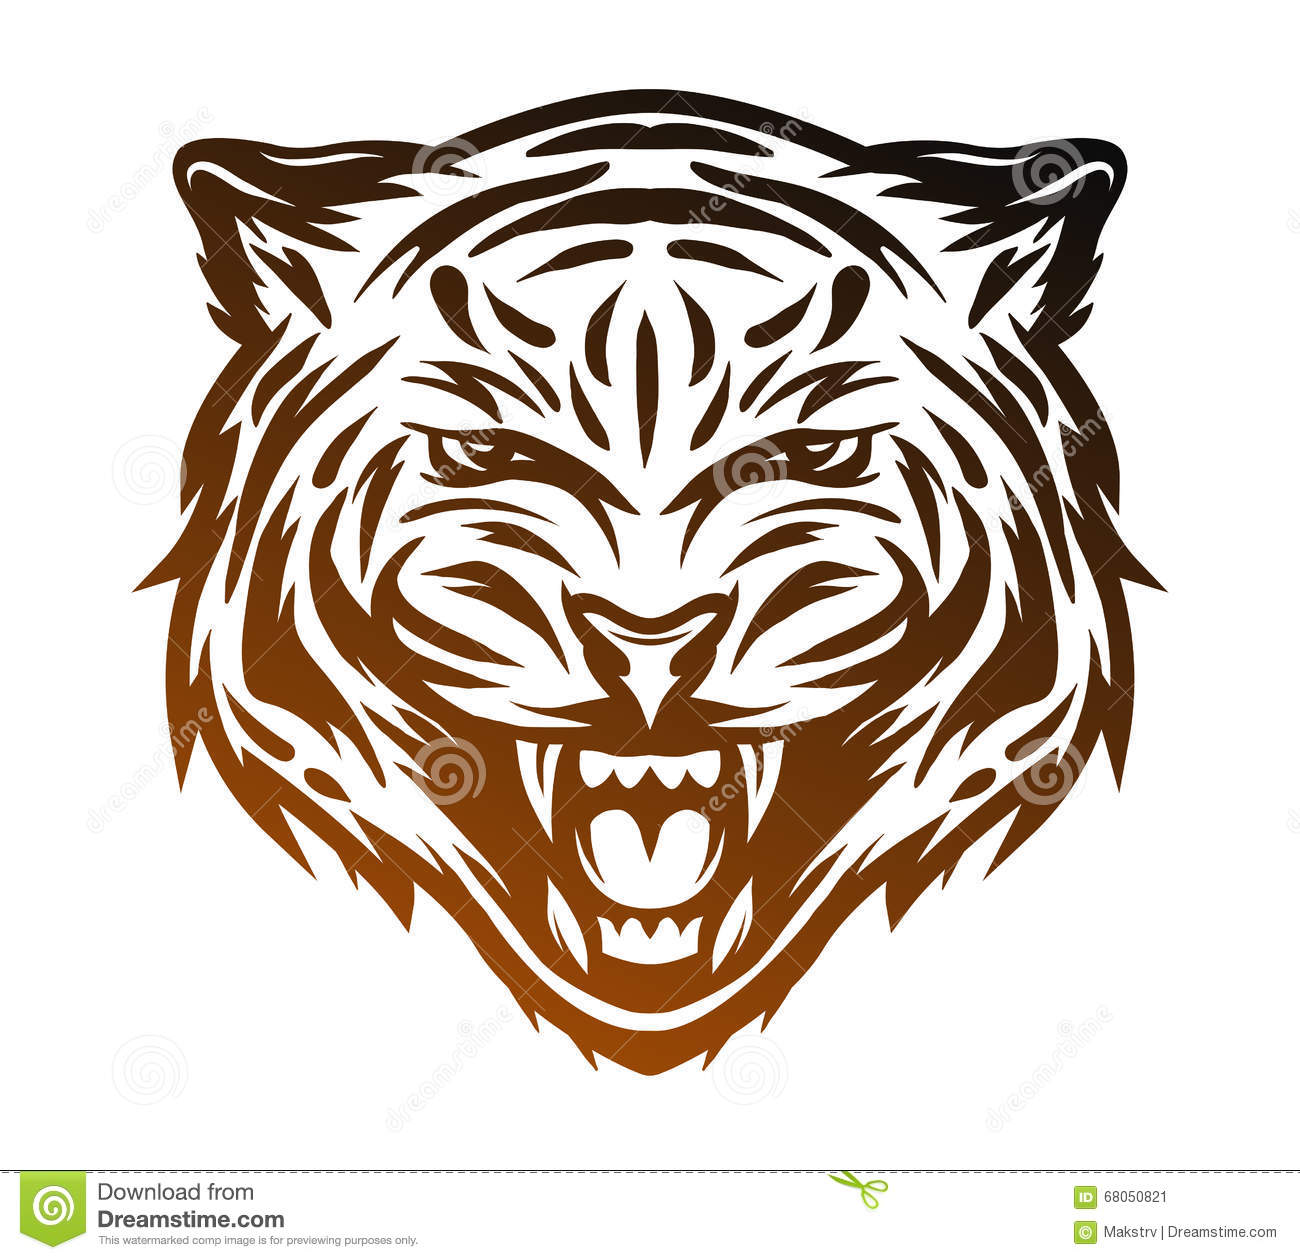 Line Drawing Tiger Face : Aggressive tiger face line art style stock vector